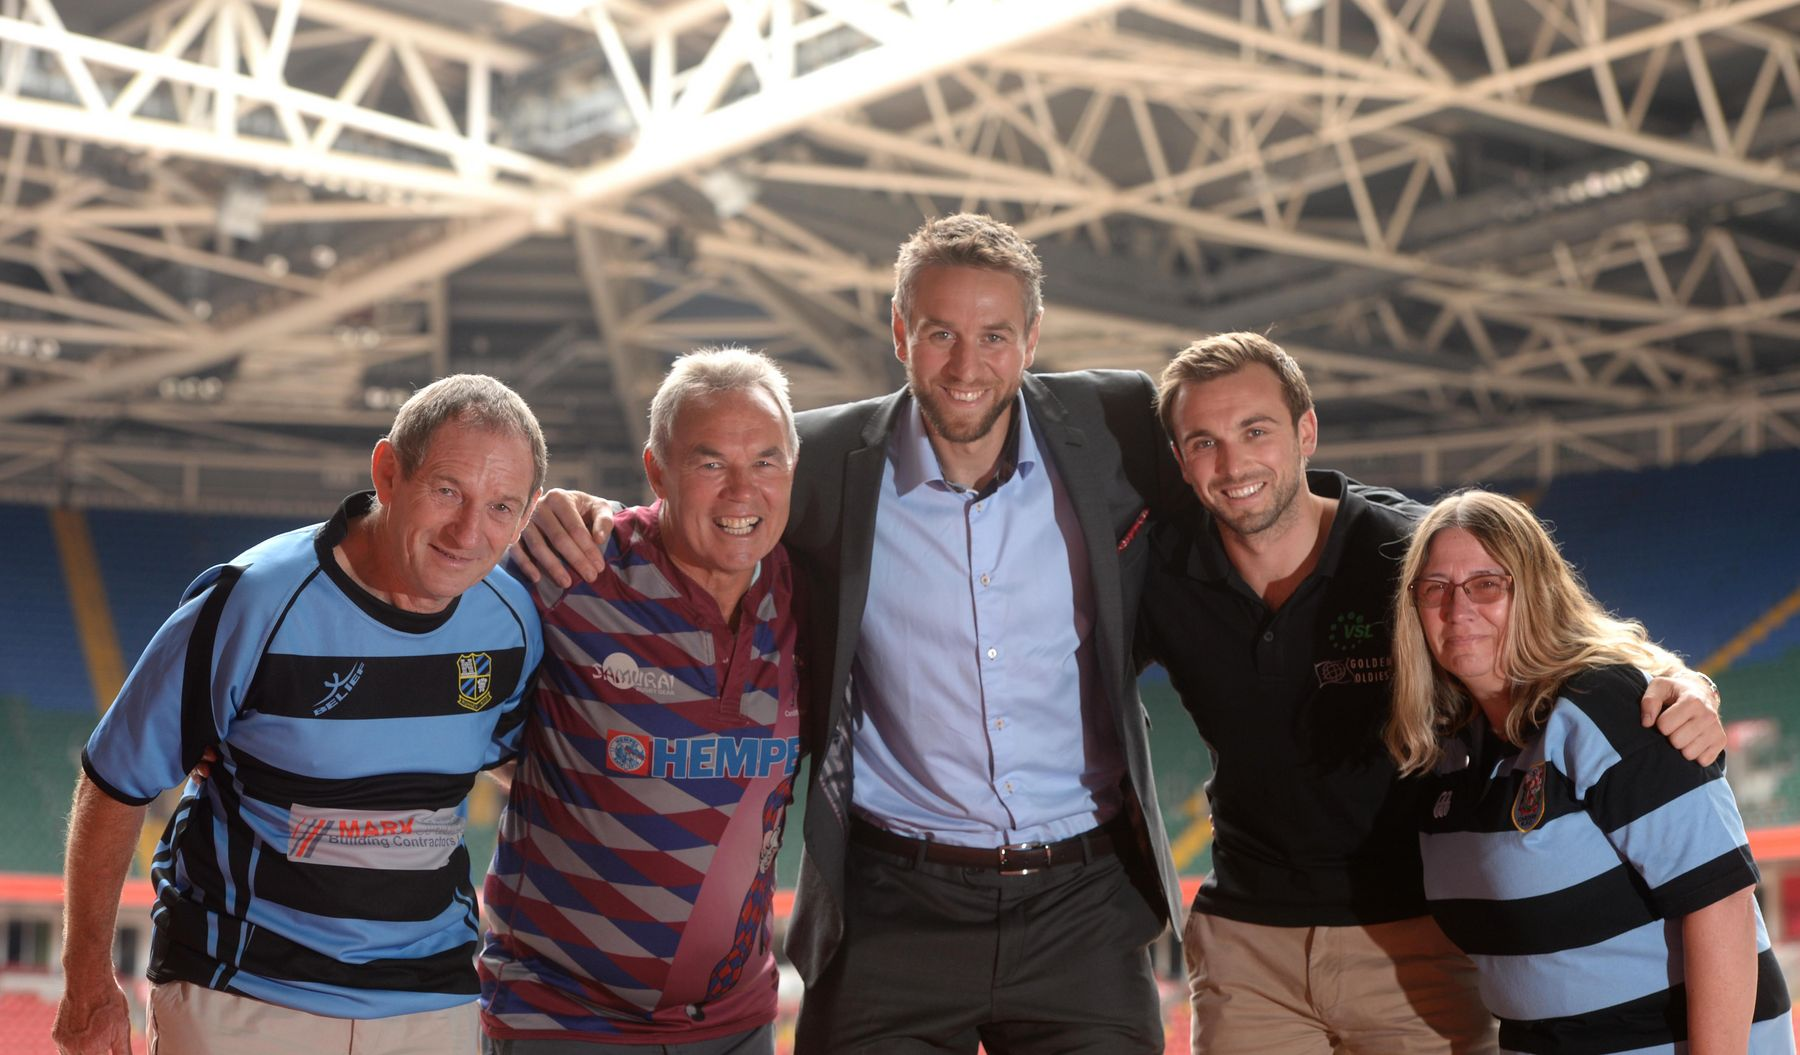 Welsh welcome for Golden Oldies